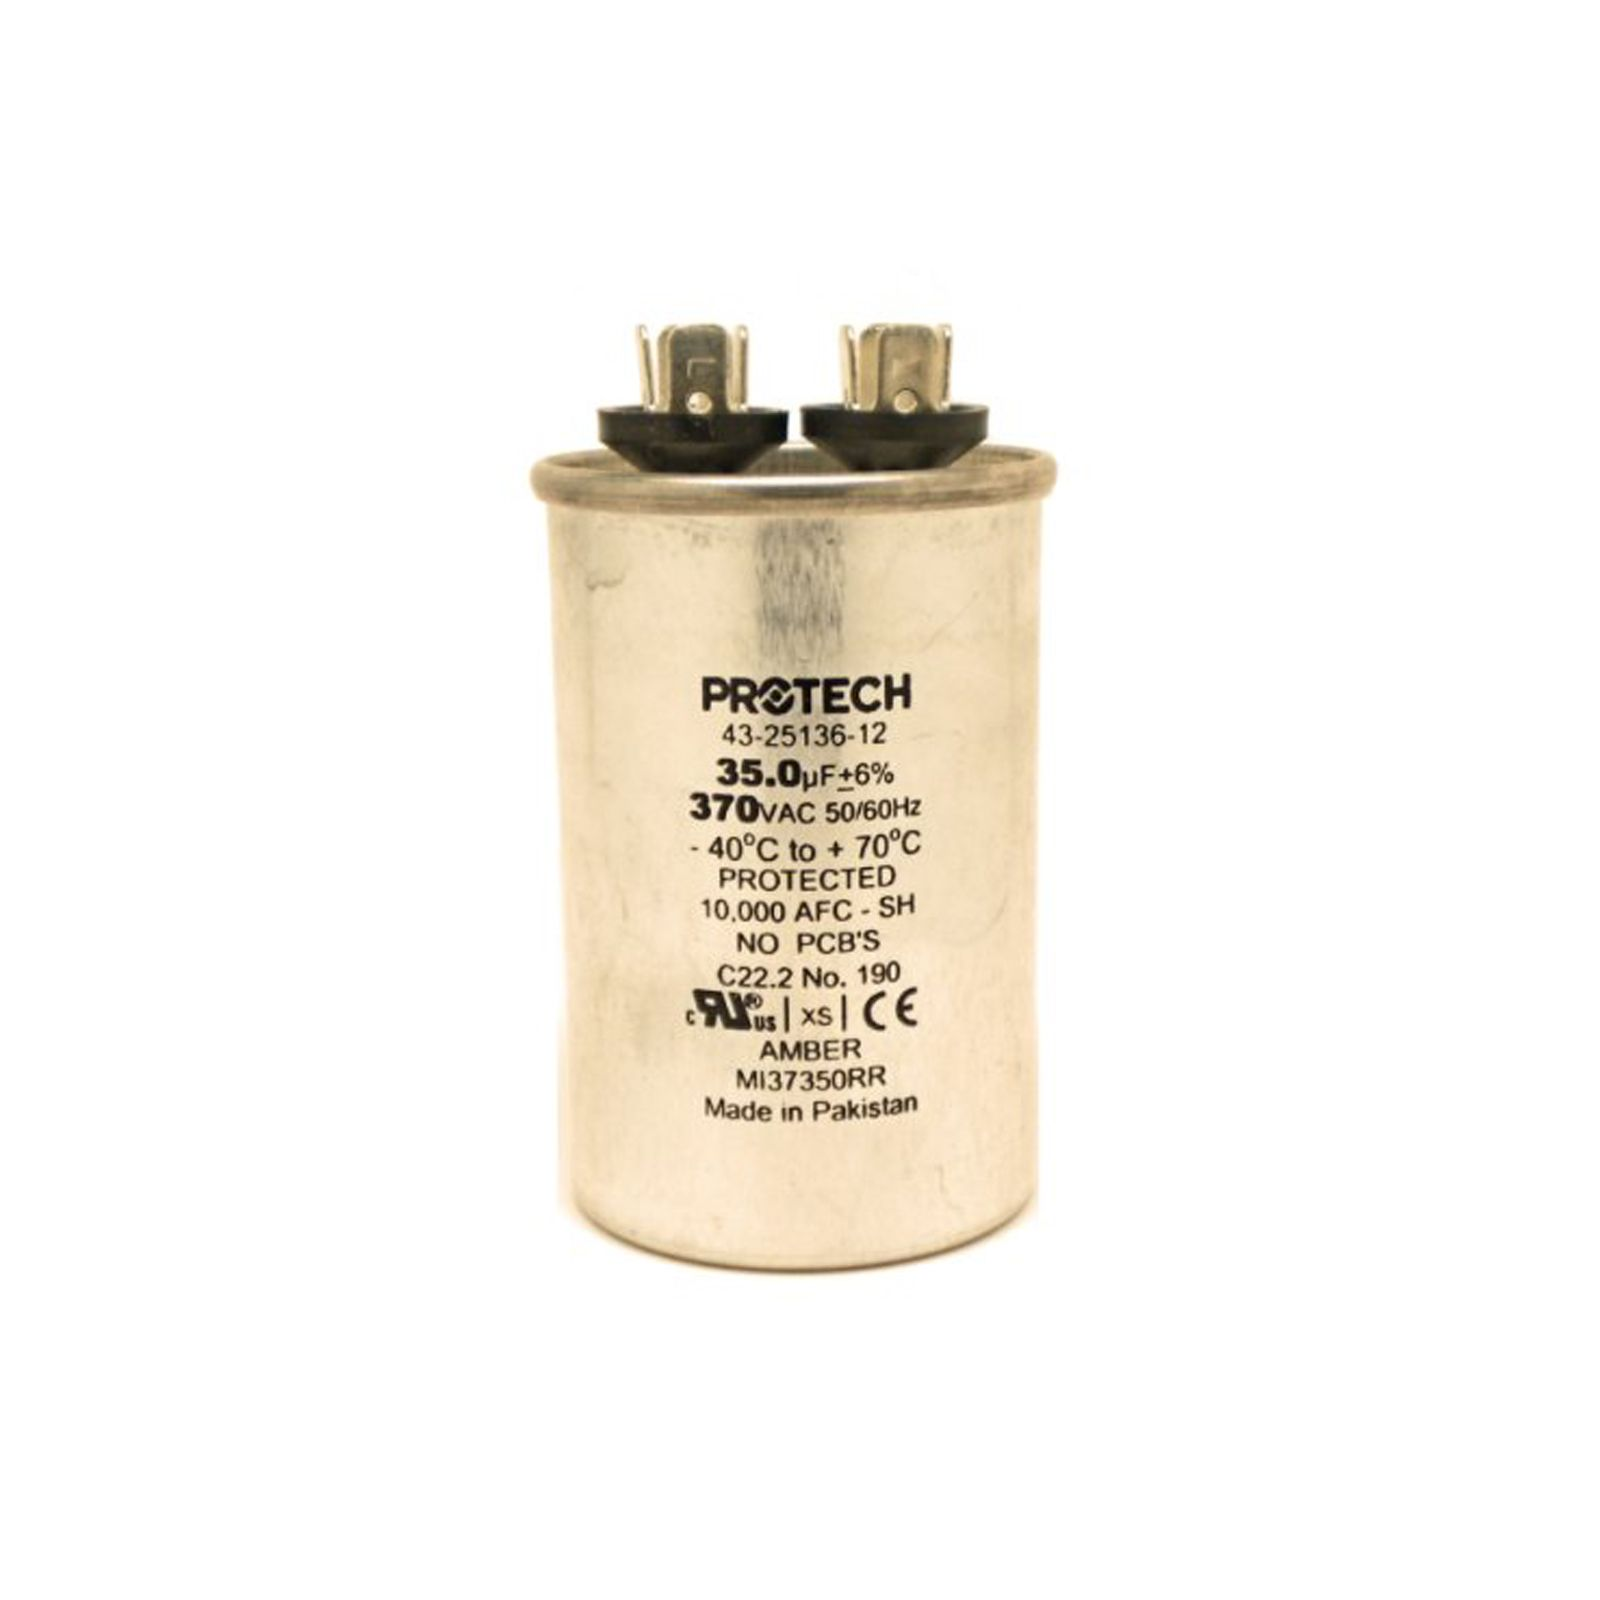 PROTECH 43-25136-12 - Capacitor - 35/370 Single Round